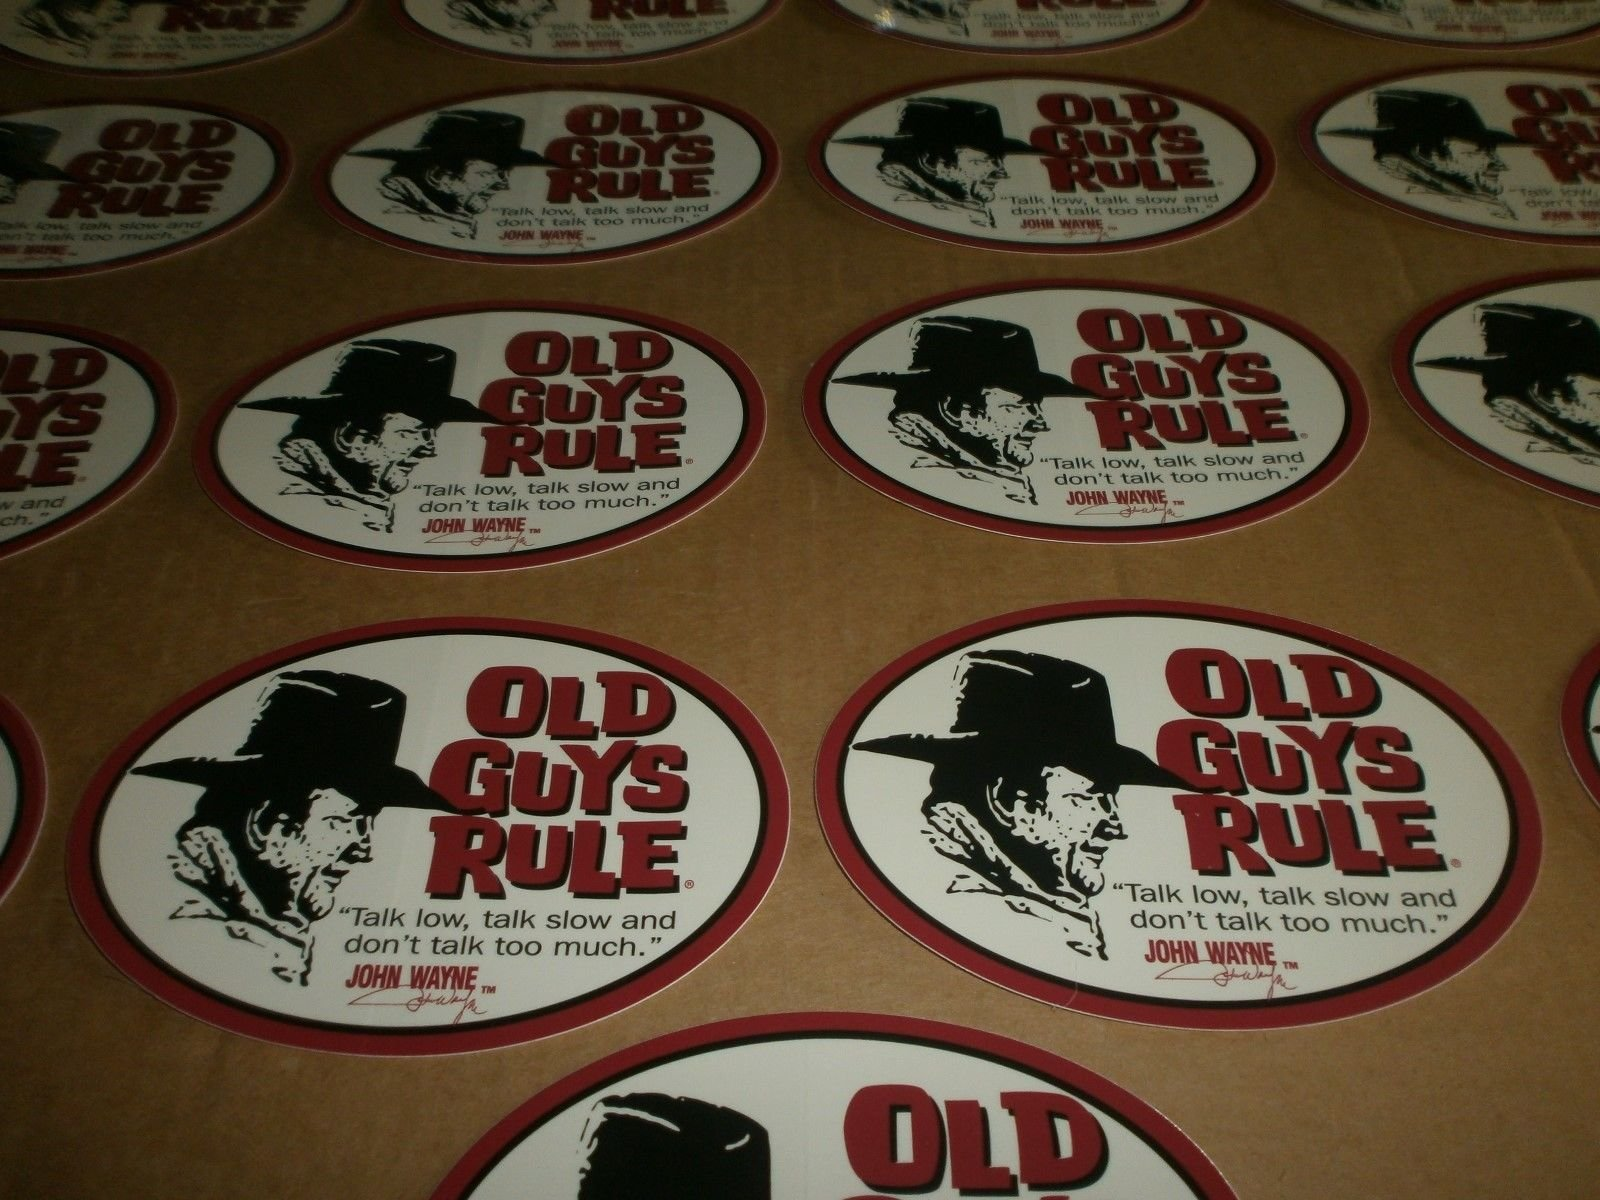 Old Guys Rule 25 John Wayne Talk Low Talk Slow and Don't Talk Too Much Stickers by Old Guys Rule